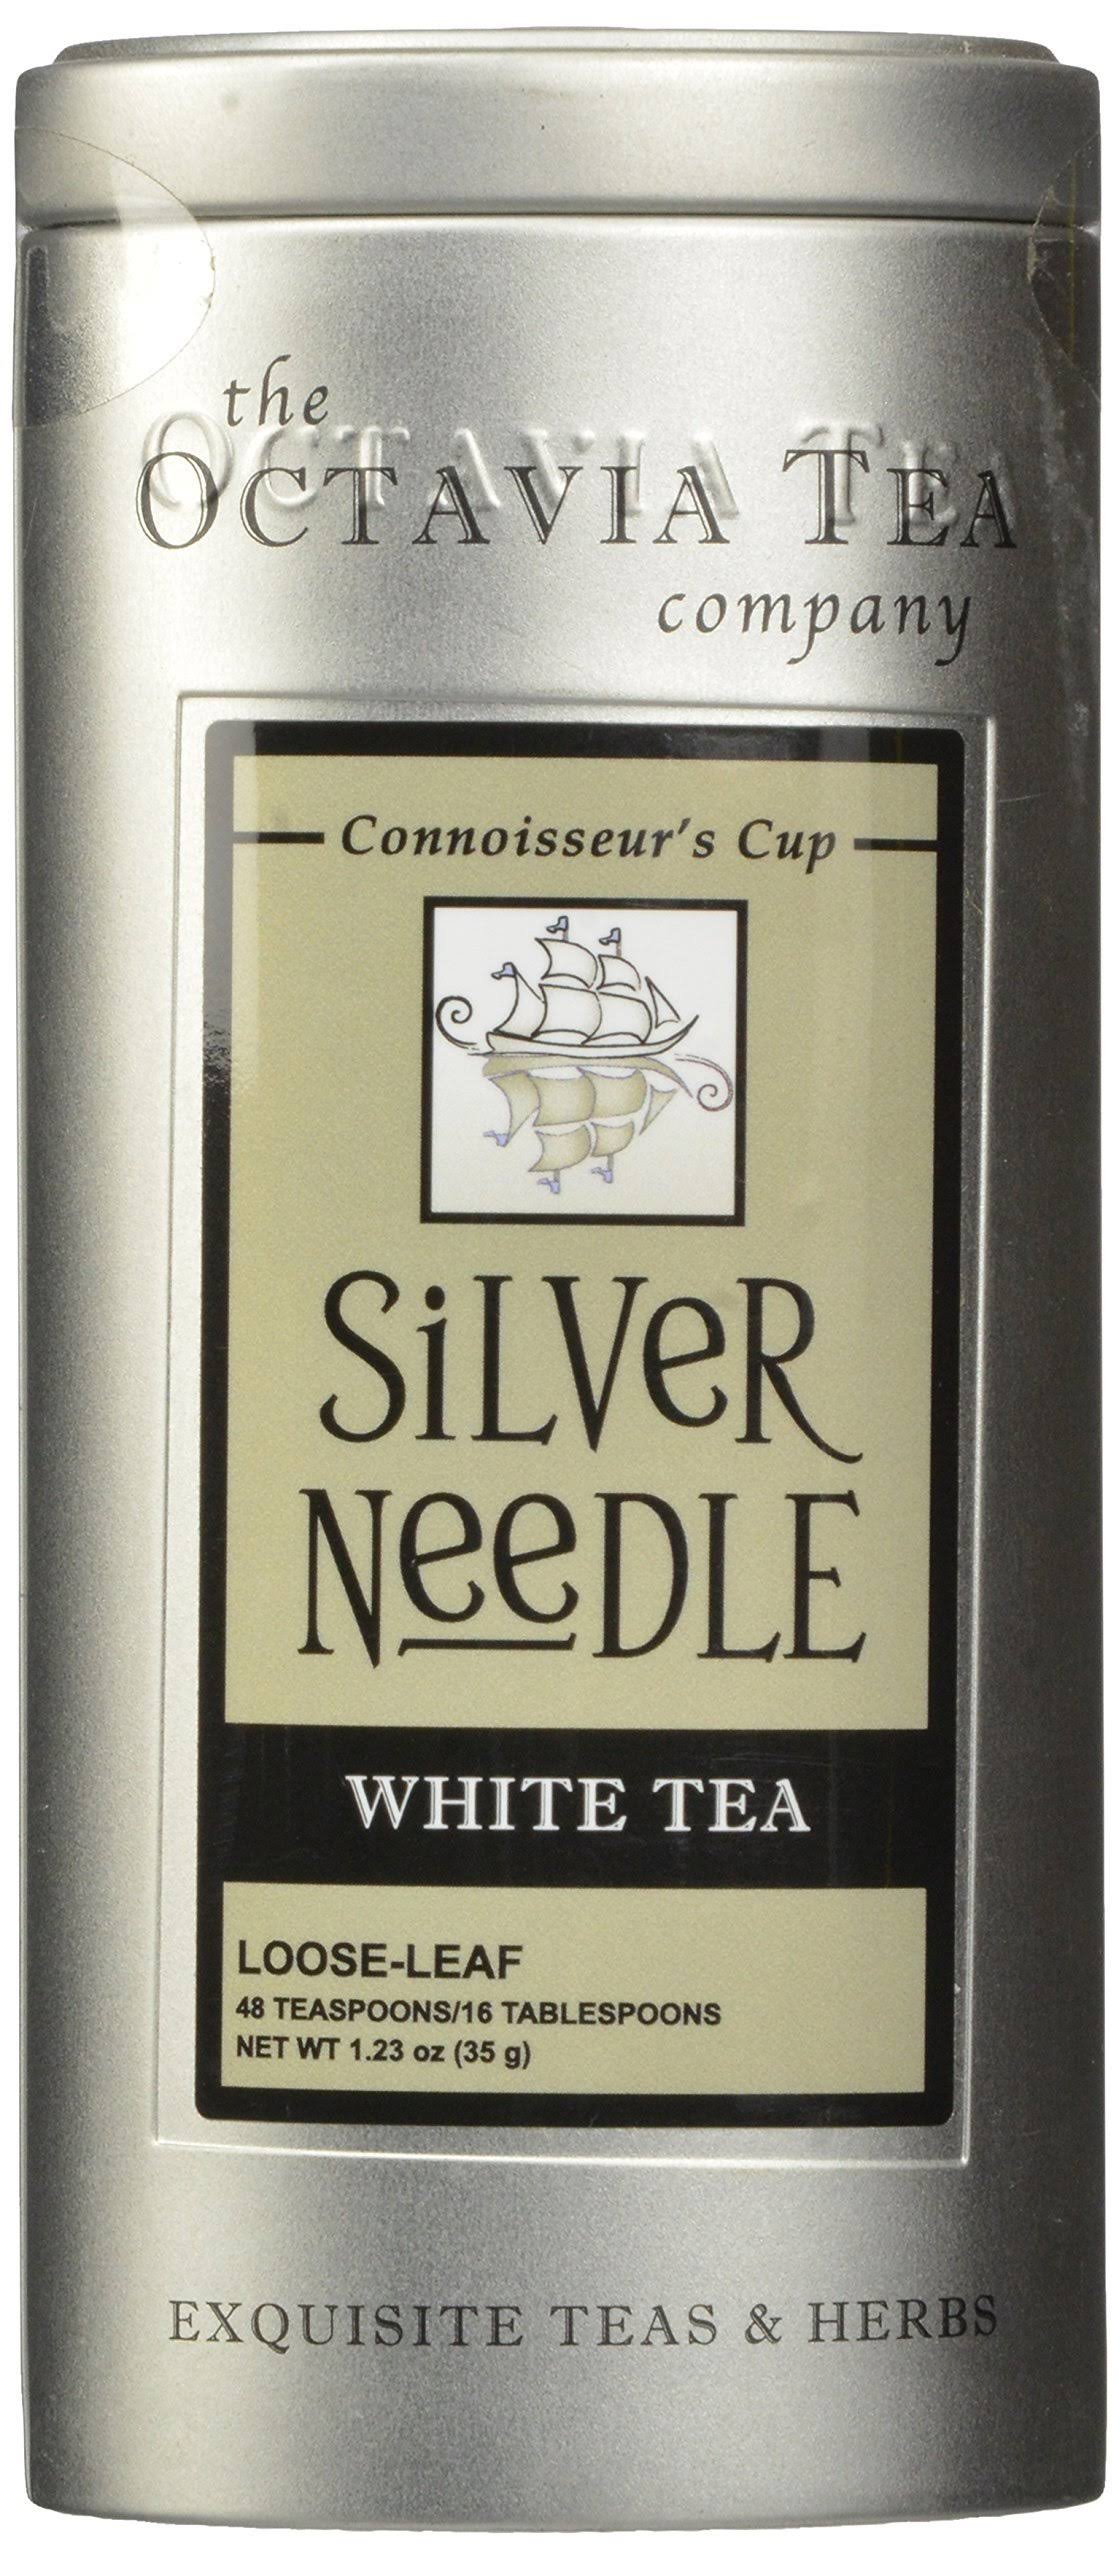 Octavia Tea Silver Needle Loose Tea - 1.23oz